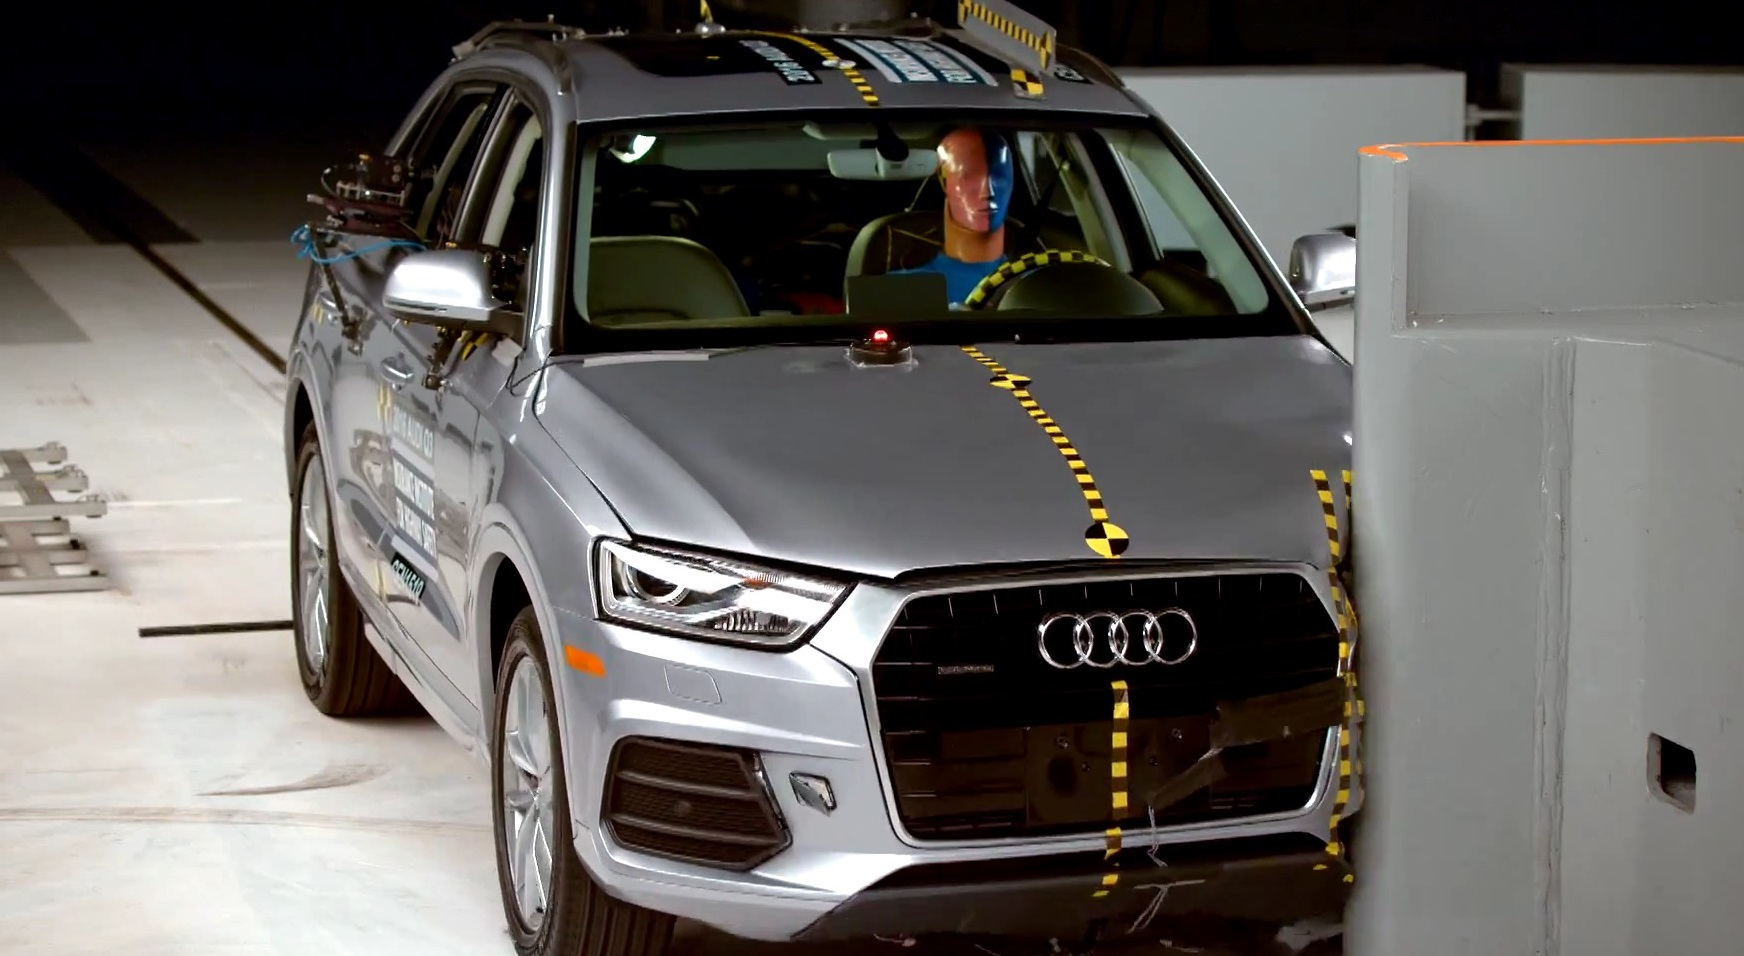 2016 Audi Q3 получил Top Safety Pick Rating в тесте IIHS [Видео] фото